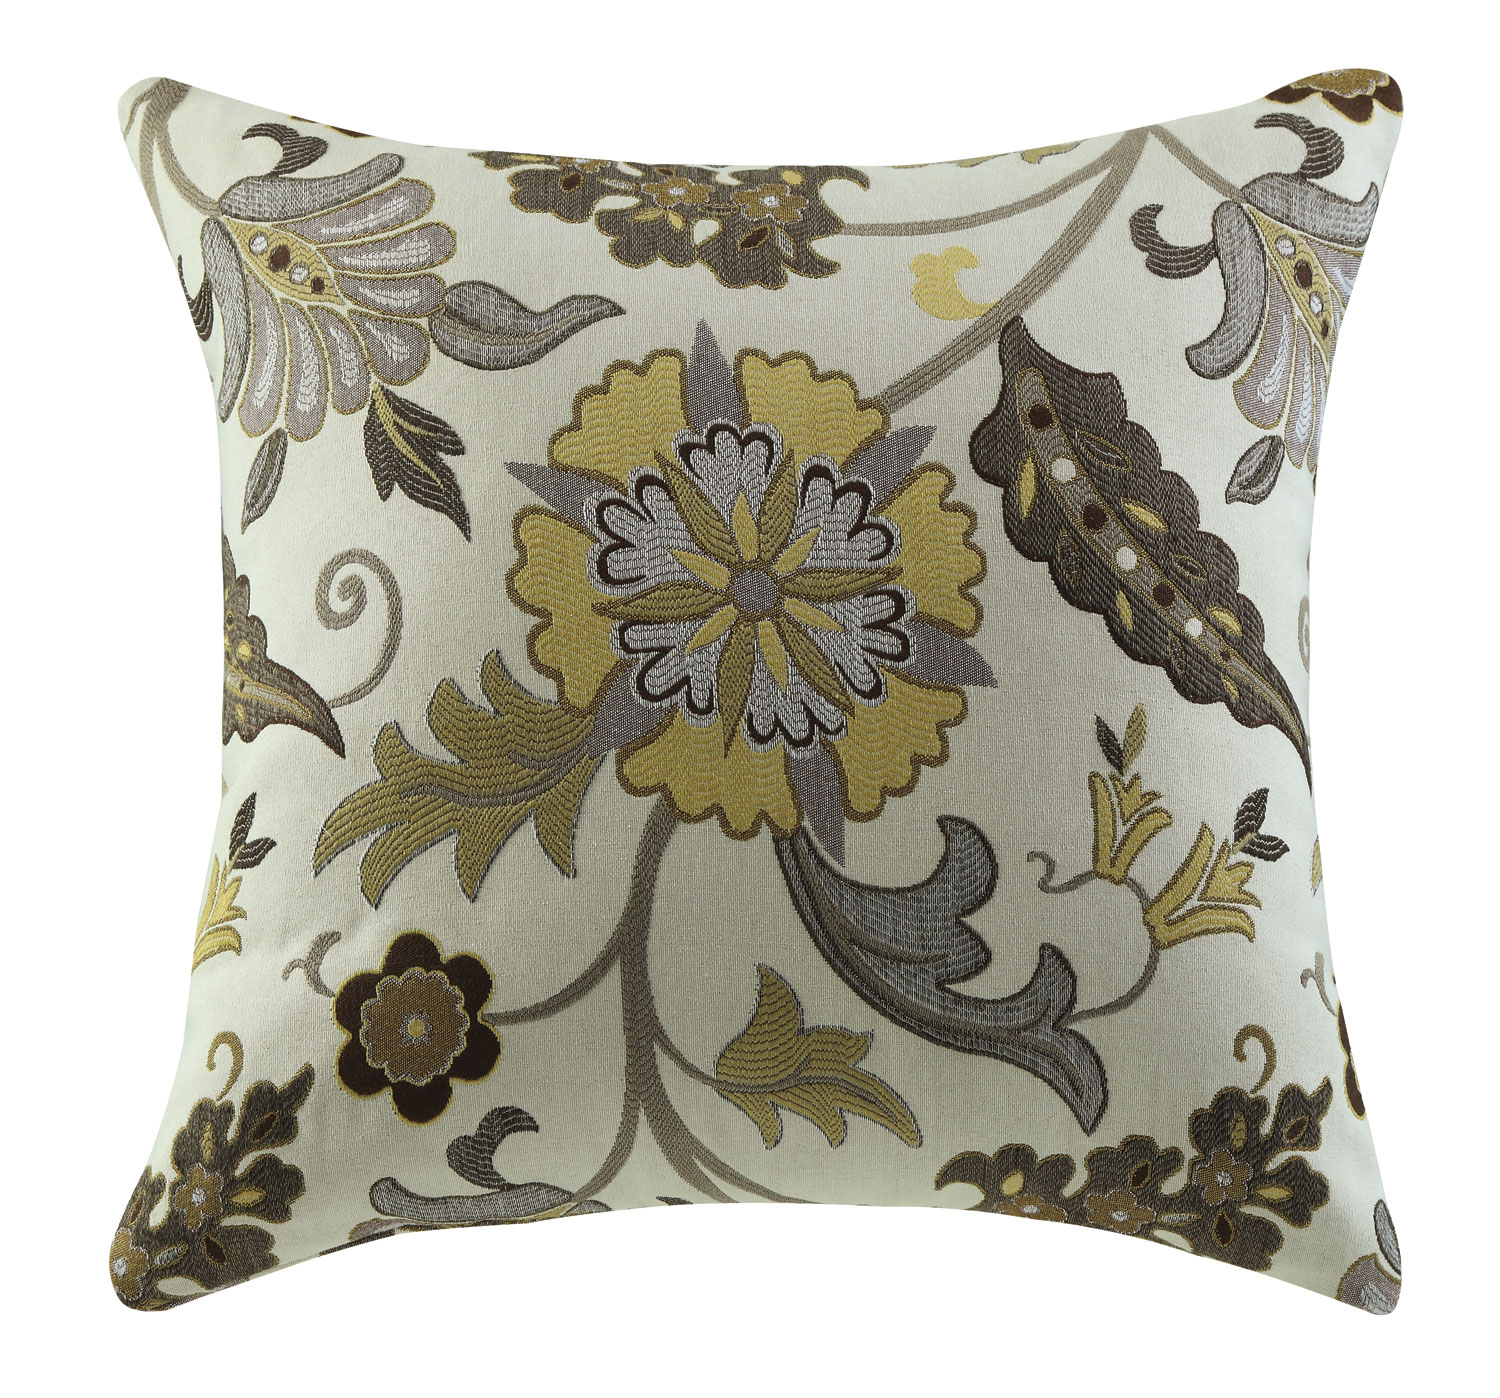 Coaster Throw Pillows Pillow - Item Number: 905002